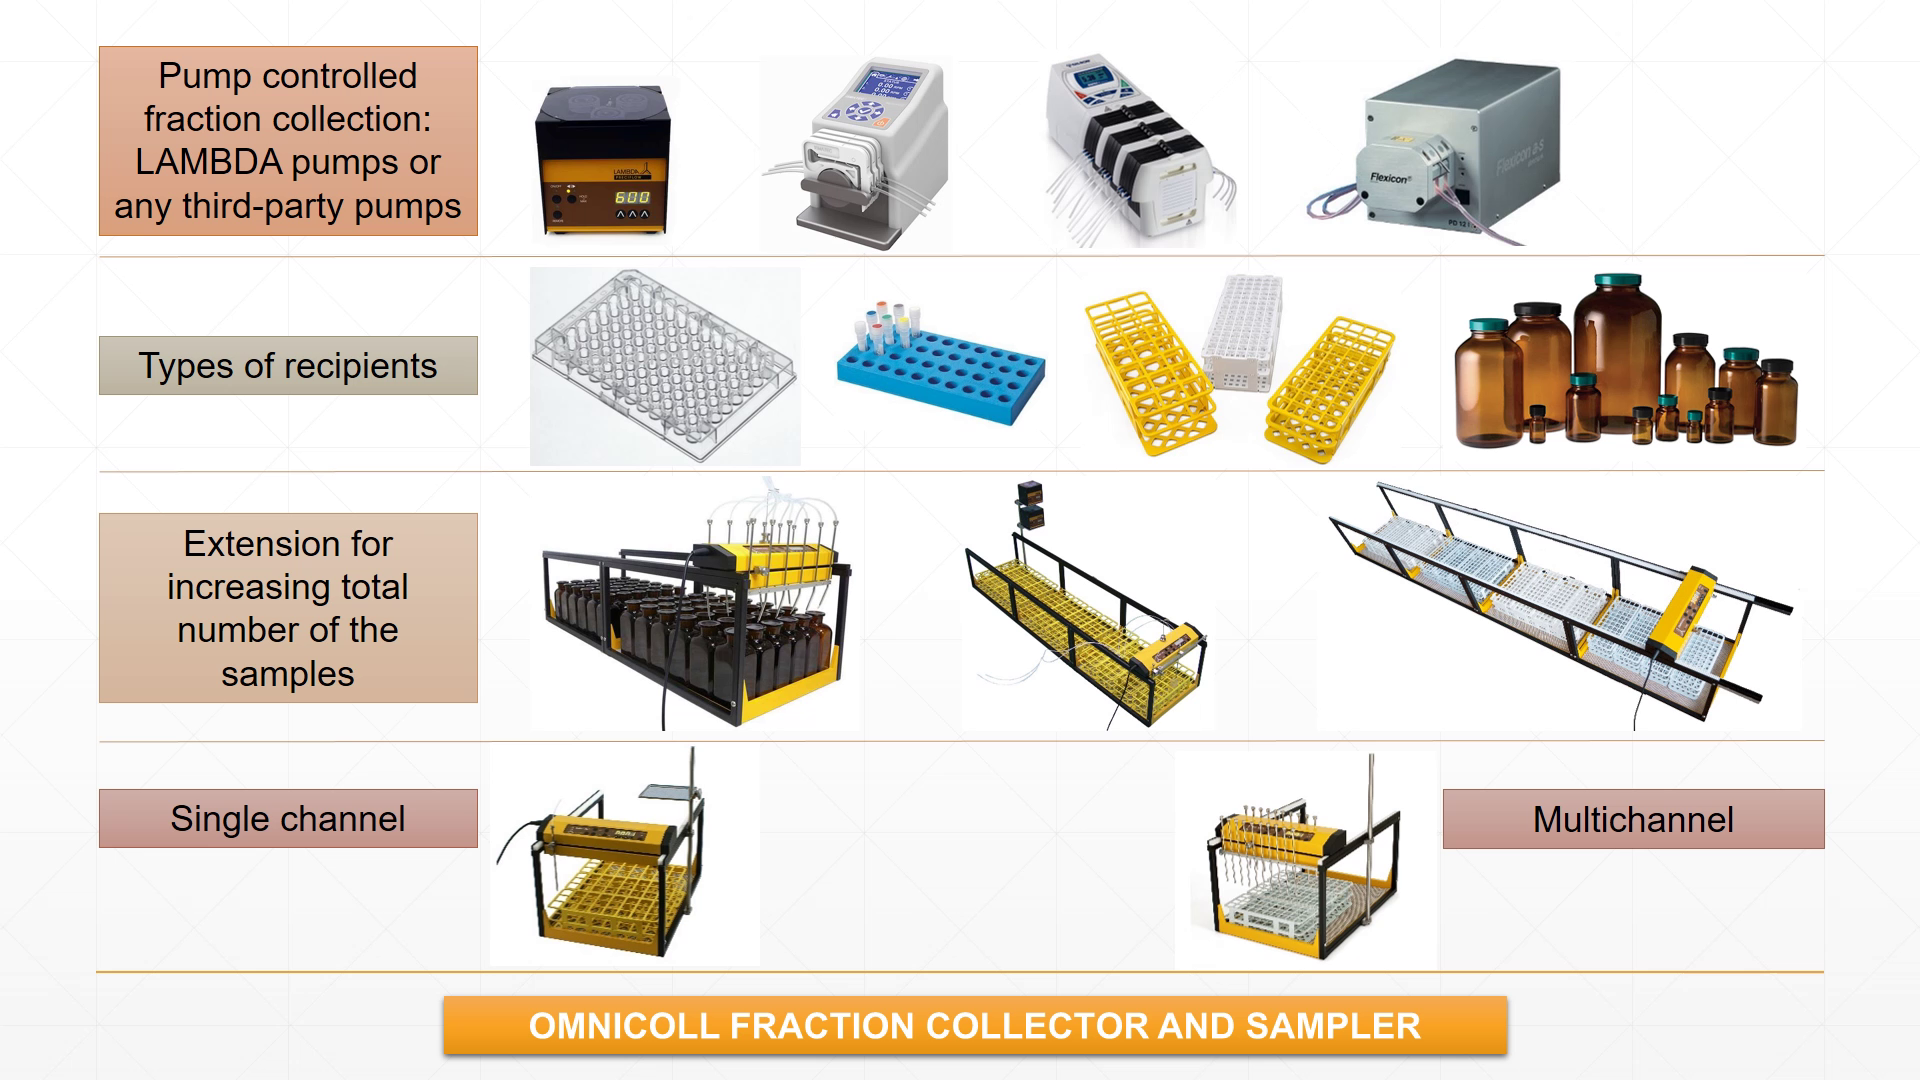 Customization possibilities of OMNICOLL fraction collector and sampler